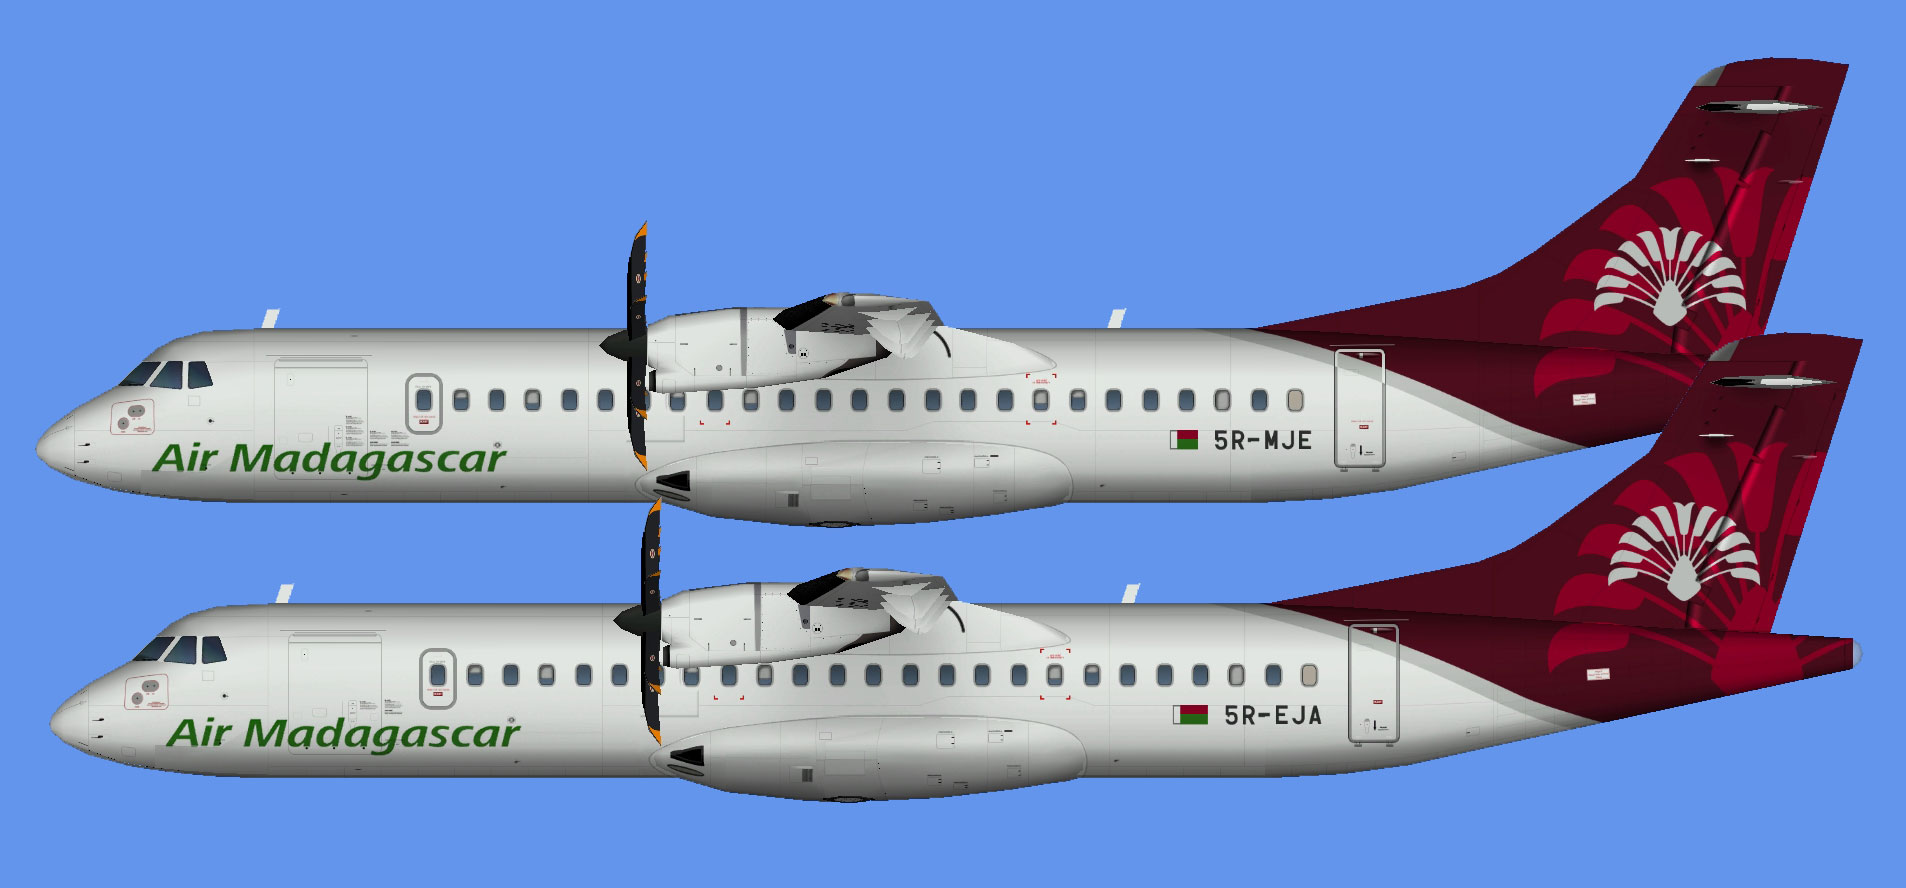 Air Madagascar ATR 72 fleet